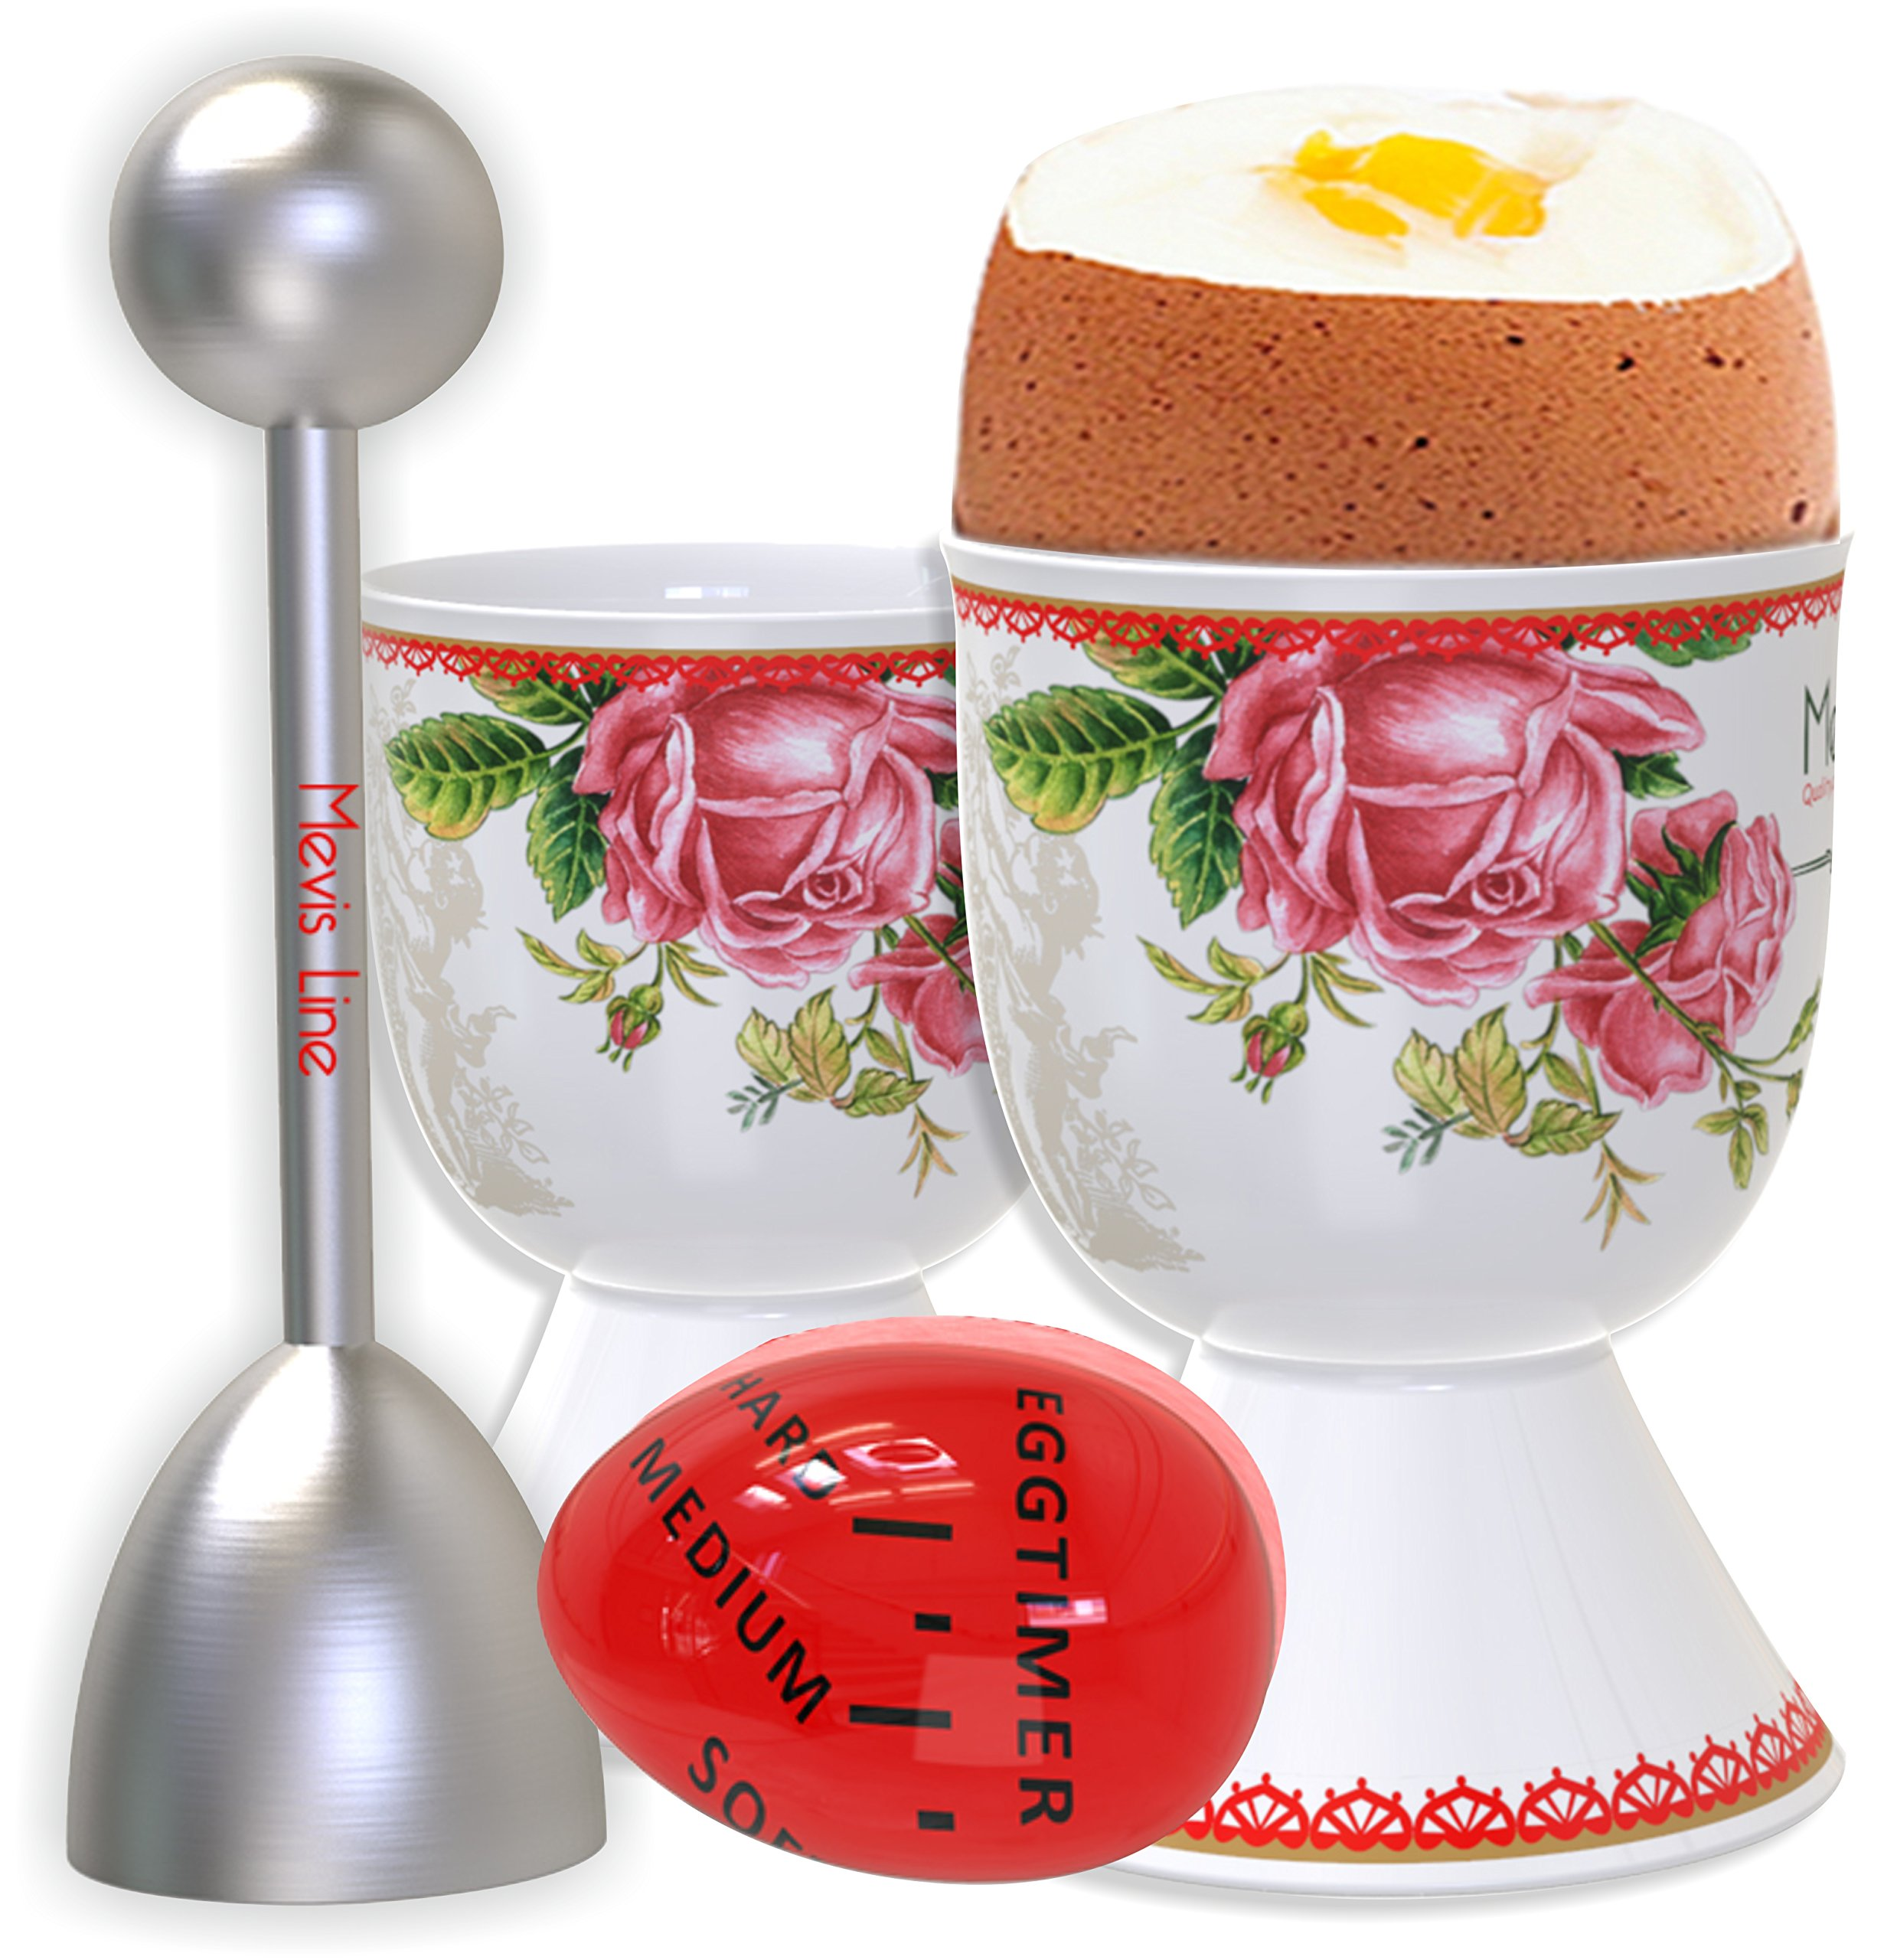 MEVIS Line - Set for 4 Person Boiled Egg Kit 2 Egg Cups With Spoons, 1 Egg Timer, and 1 Topper Cracker, Easy to Use Breakfast Set for Egg Lovers by MEVIS LINE (Image #1)